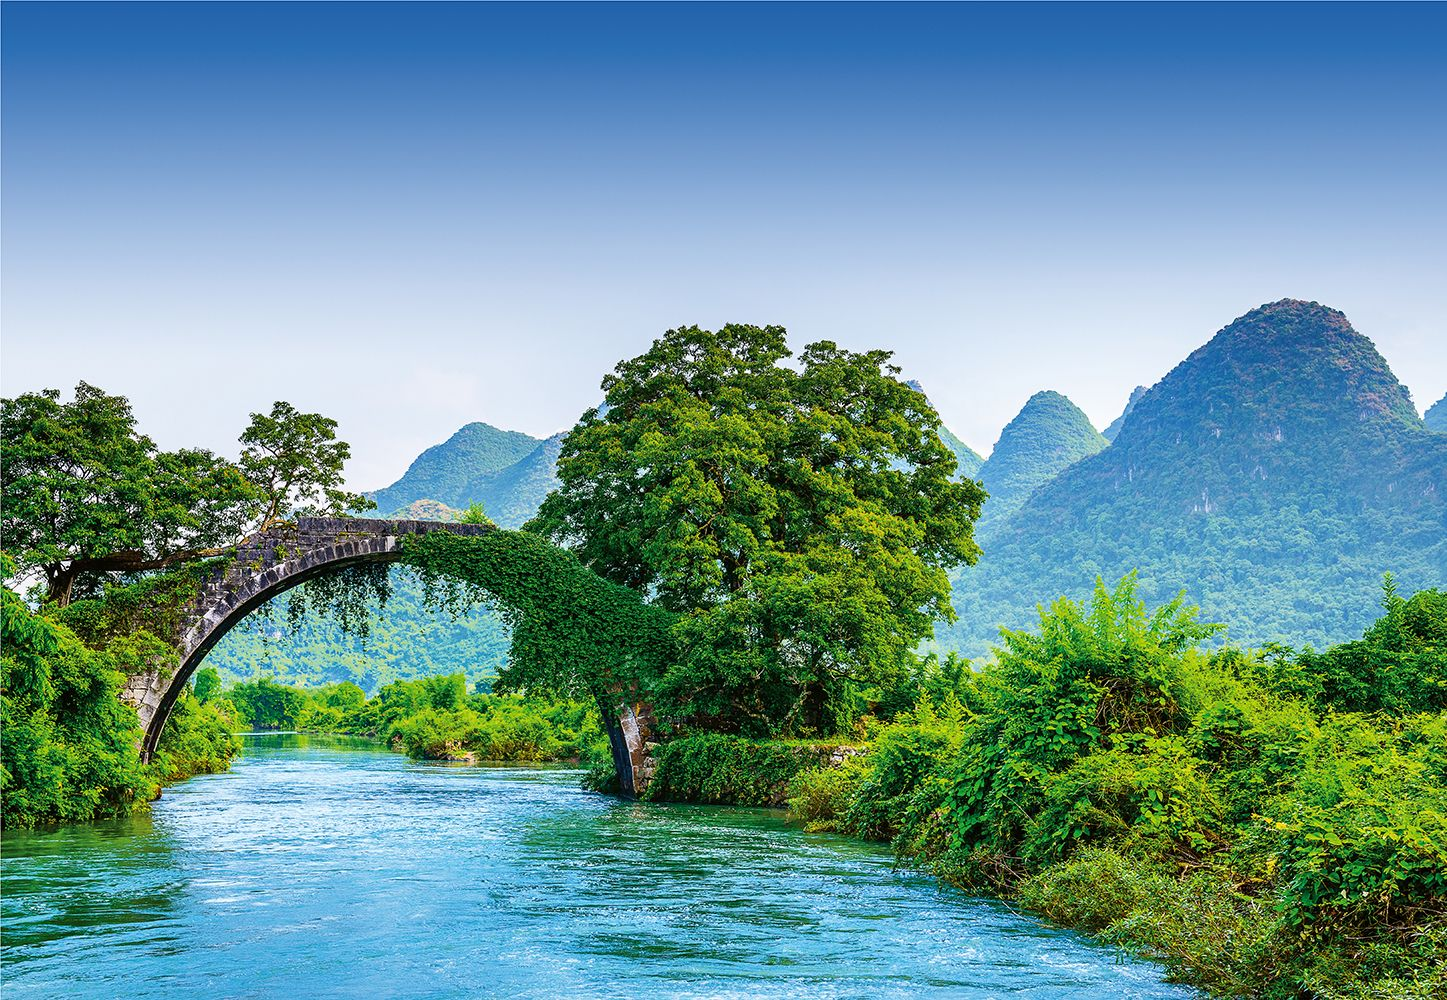 Valokuvatapetti Idealdecor Digital Bridge Crosses A River In China 4-osaa 5031-4V-1 254x368 cm